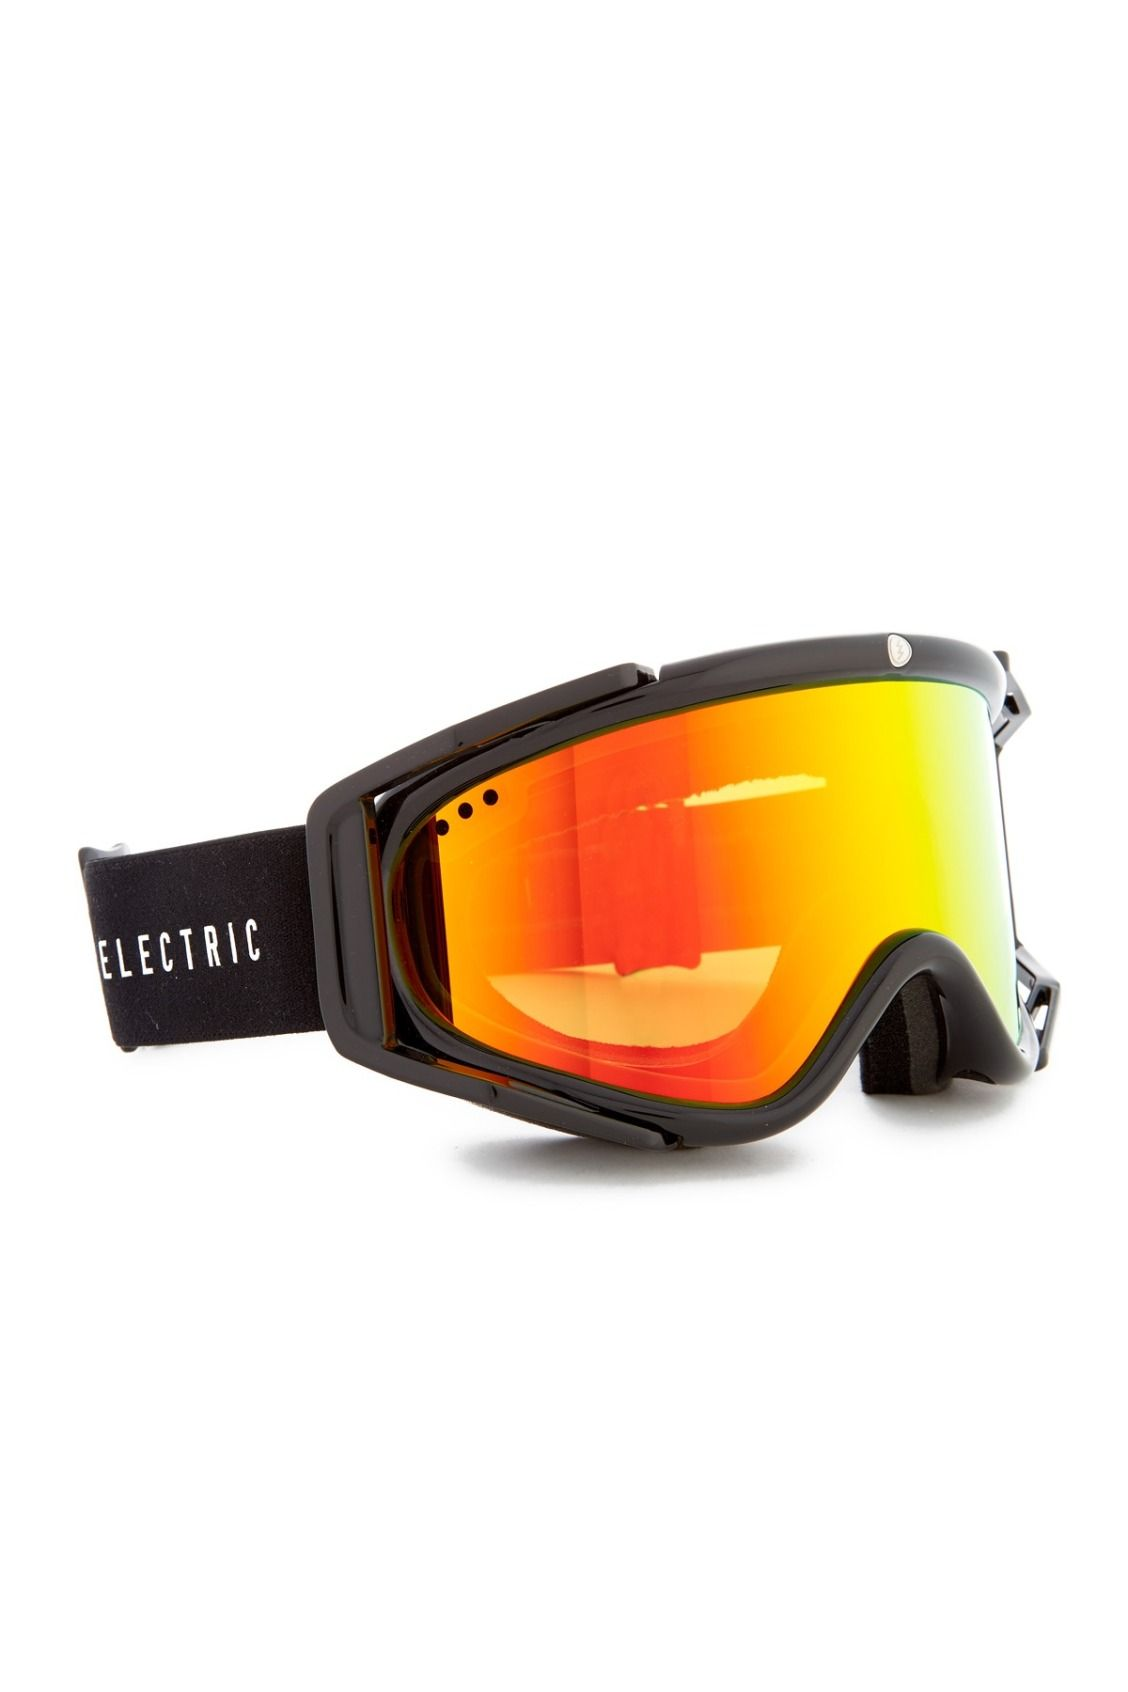 A new pair of snow goggles for the skier/snowboarder on your list!